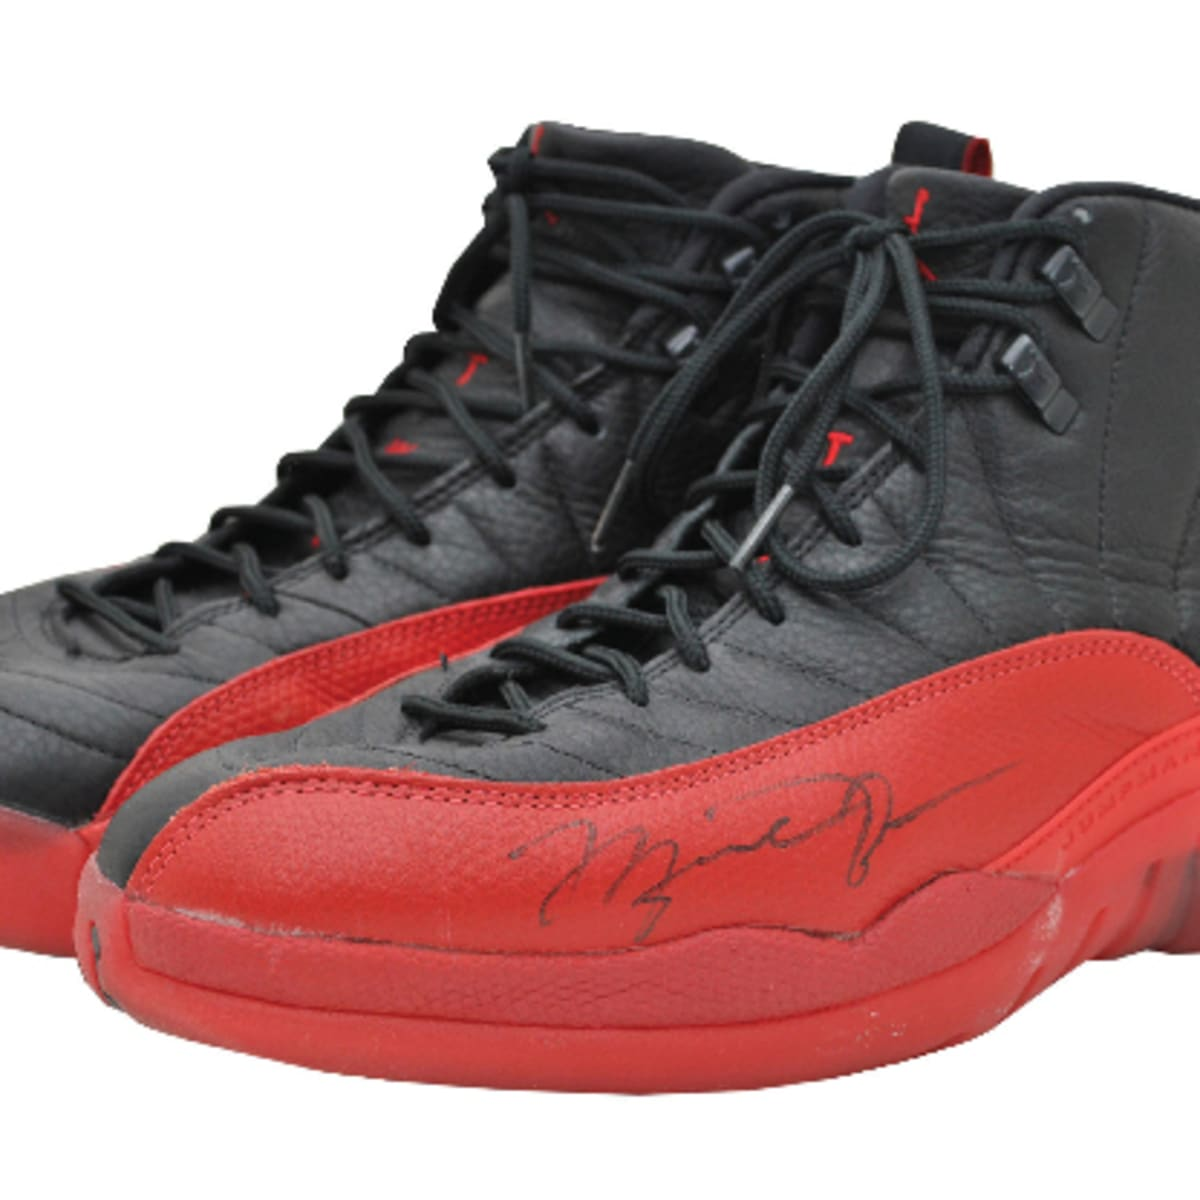 Michael Jordan's 'Flu Game' sneakers auctioned for $104K by former ...